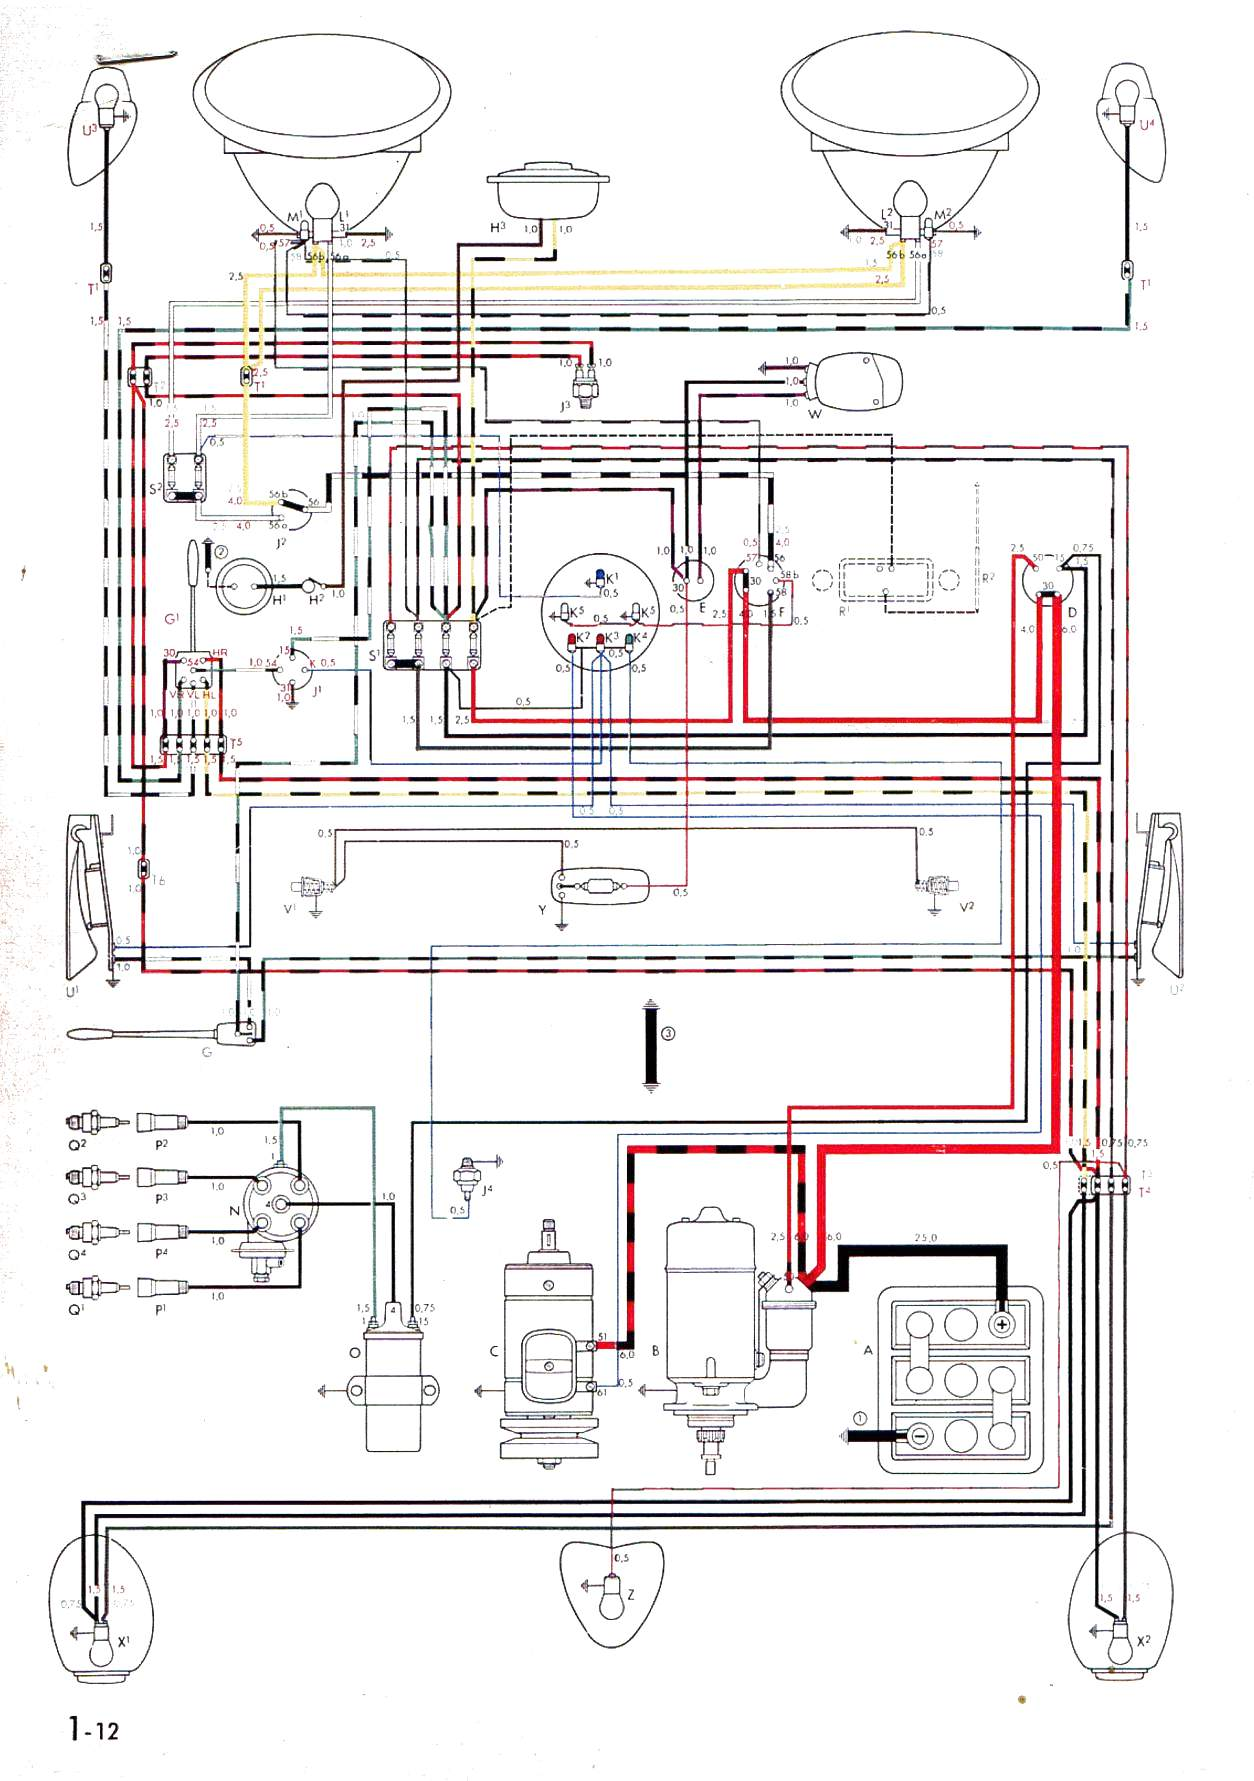 bug 55 57 vw wiring diagrams wiring diagram for 1972 vw beetle at sewacar.co